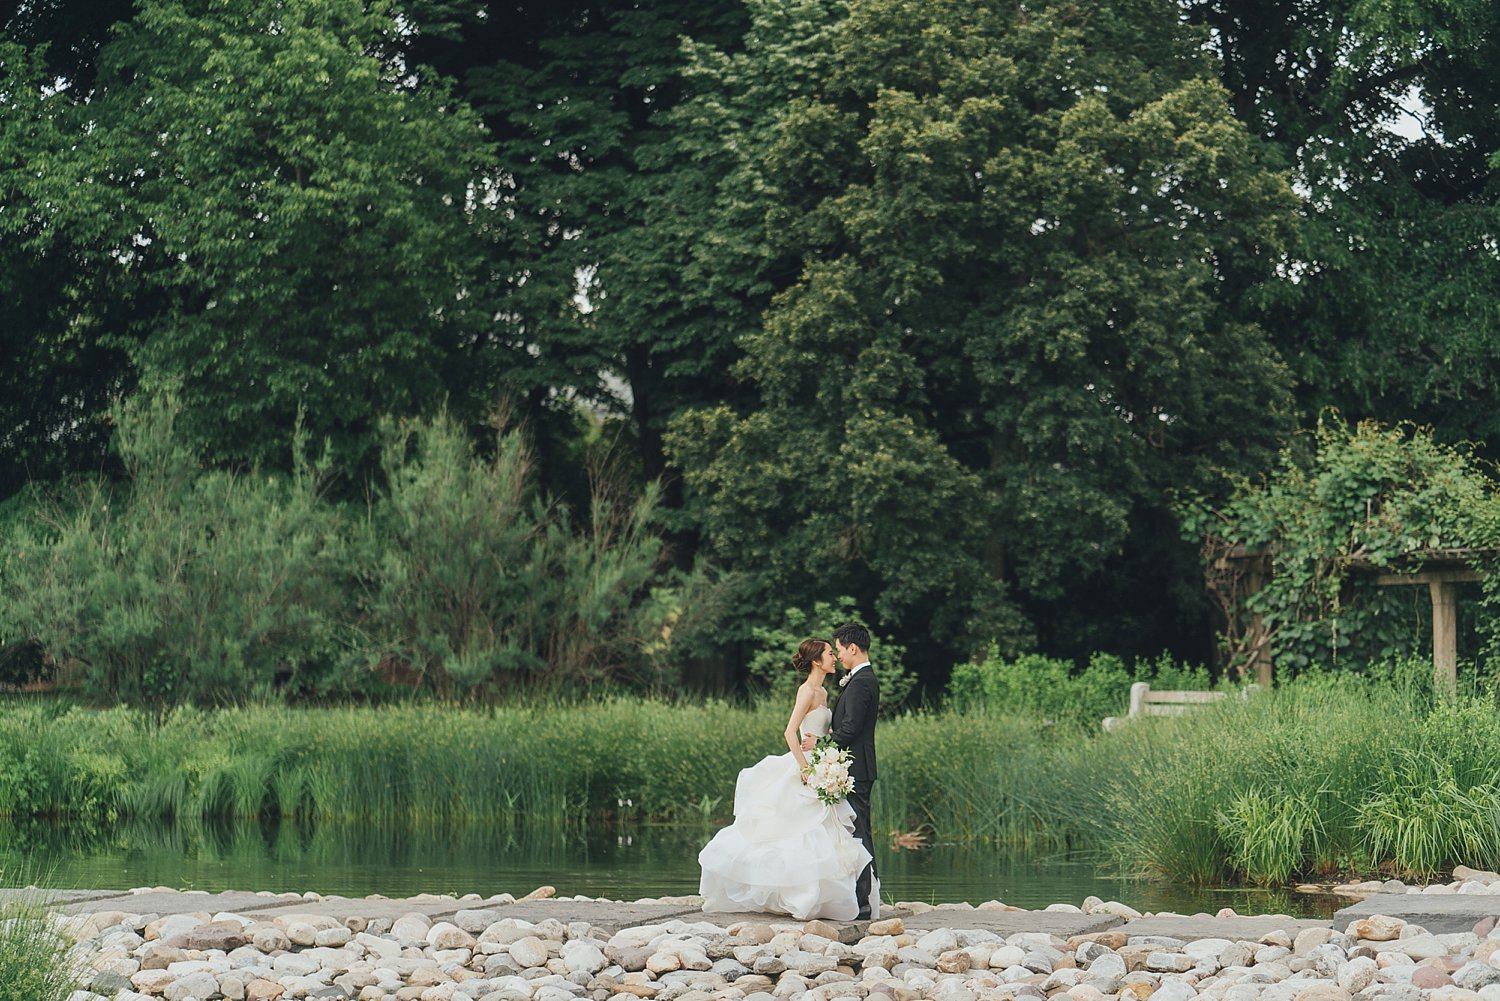 nyc-wedding-photography-nj-tri-state-cinematography-intothestory-by-moo-jae_0288.jpg